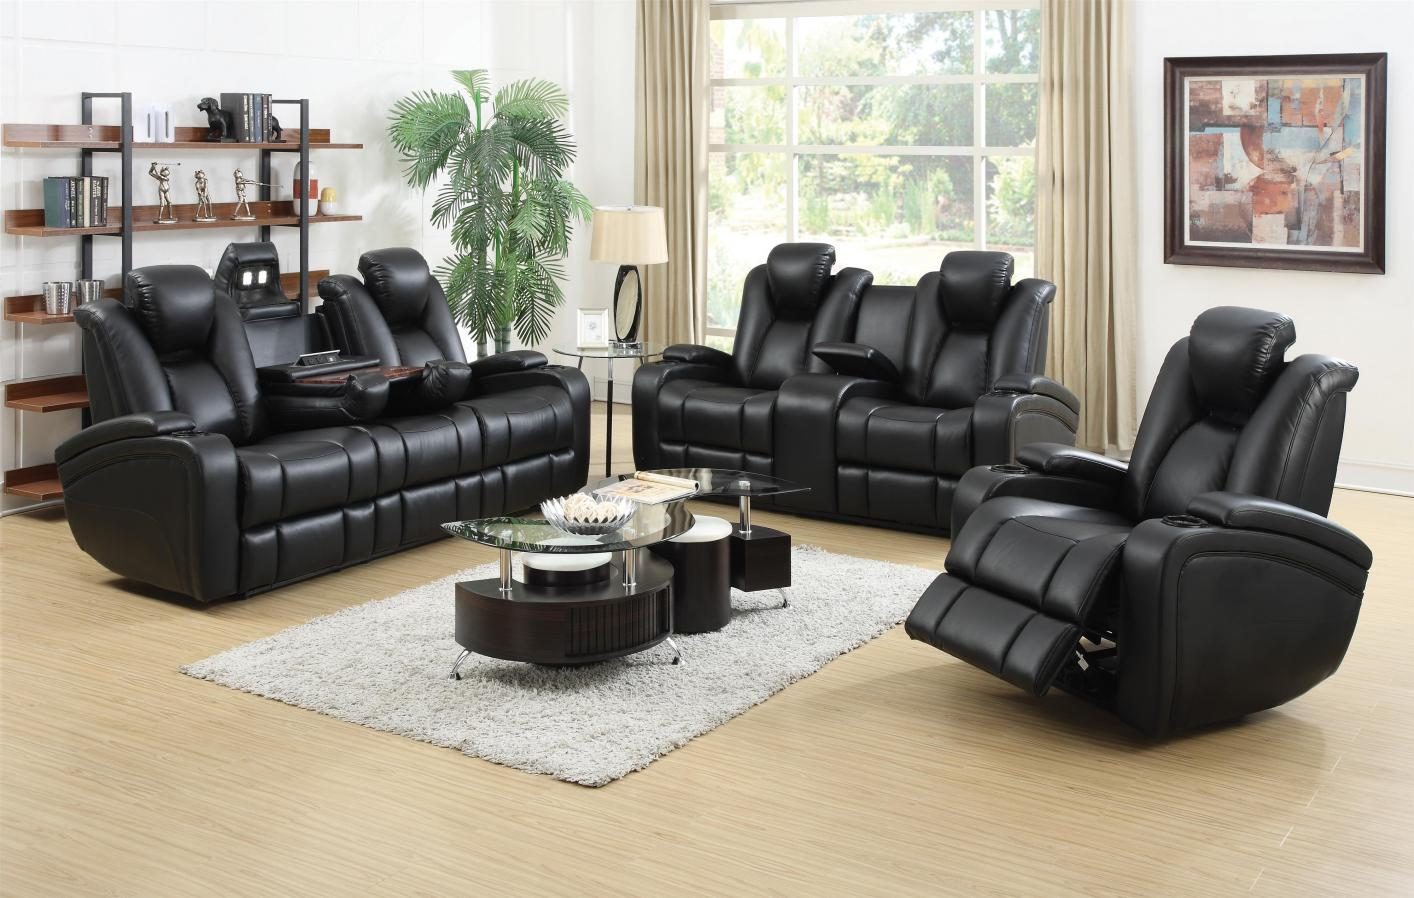 Black Leather Reclining Sofa And Loveseat Set 14 Jpg